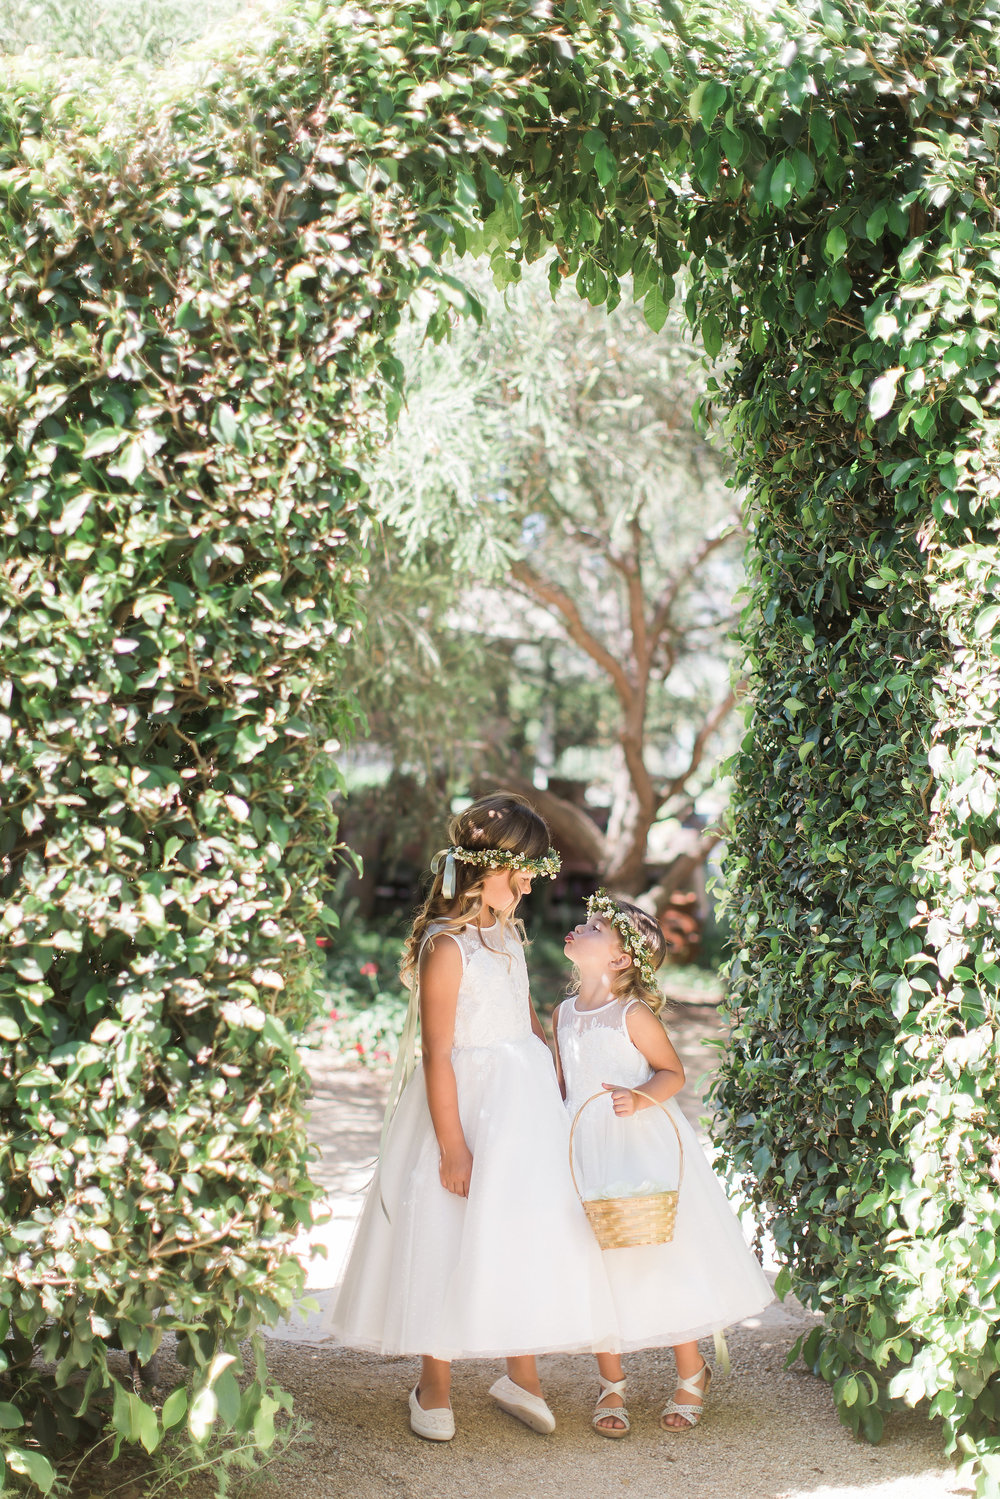 I placed these two adorable flower girls under this greenery and asked them to stand and look at me. Then I asked them to look at each other and she stuck her tongue out quickly. I, of course, kept snapping as I laughed. Some photographers might not use this image, however, I love how natural it feels. The photo is fun and playful, a total representation of my brand. Sometimes part of the art form is choosing which moments you feel are important to show to your audience.